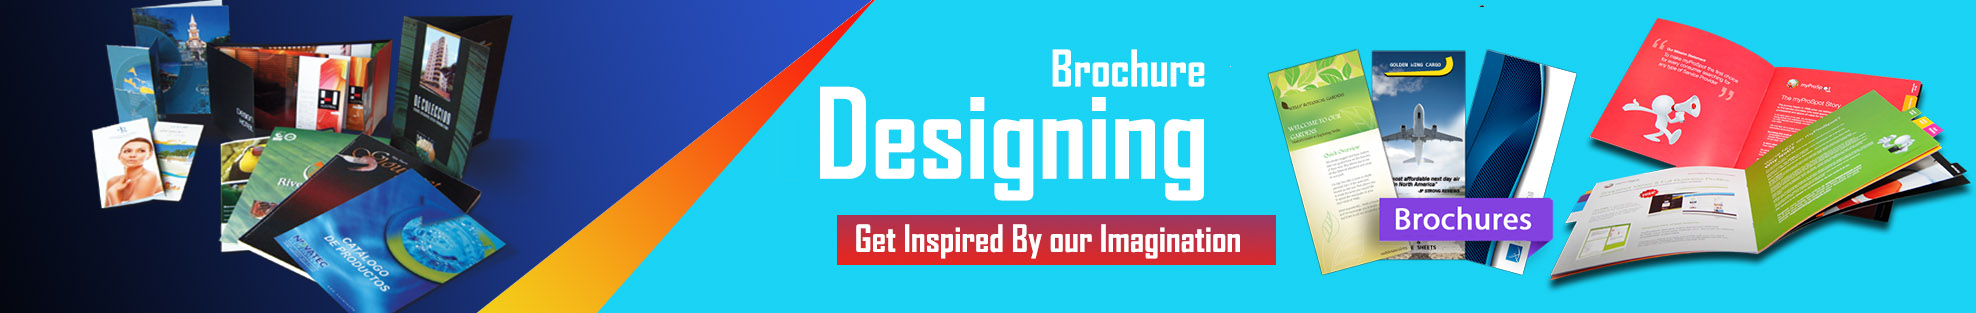 Brochure Designing | stationery design services